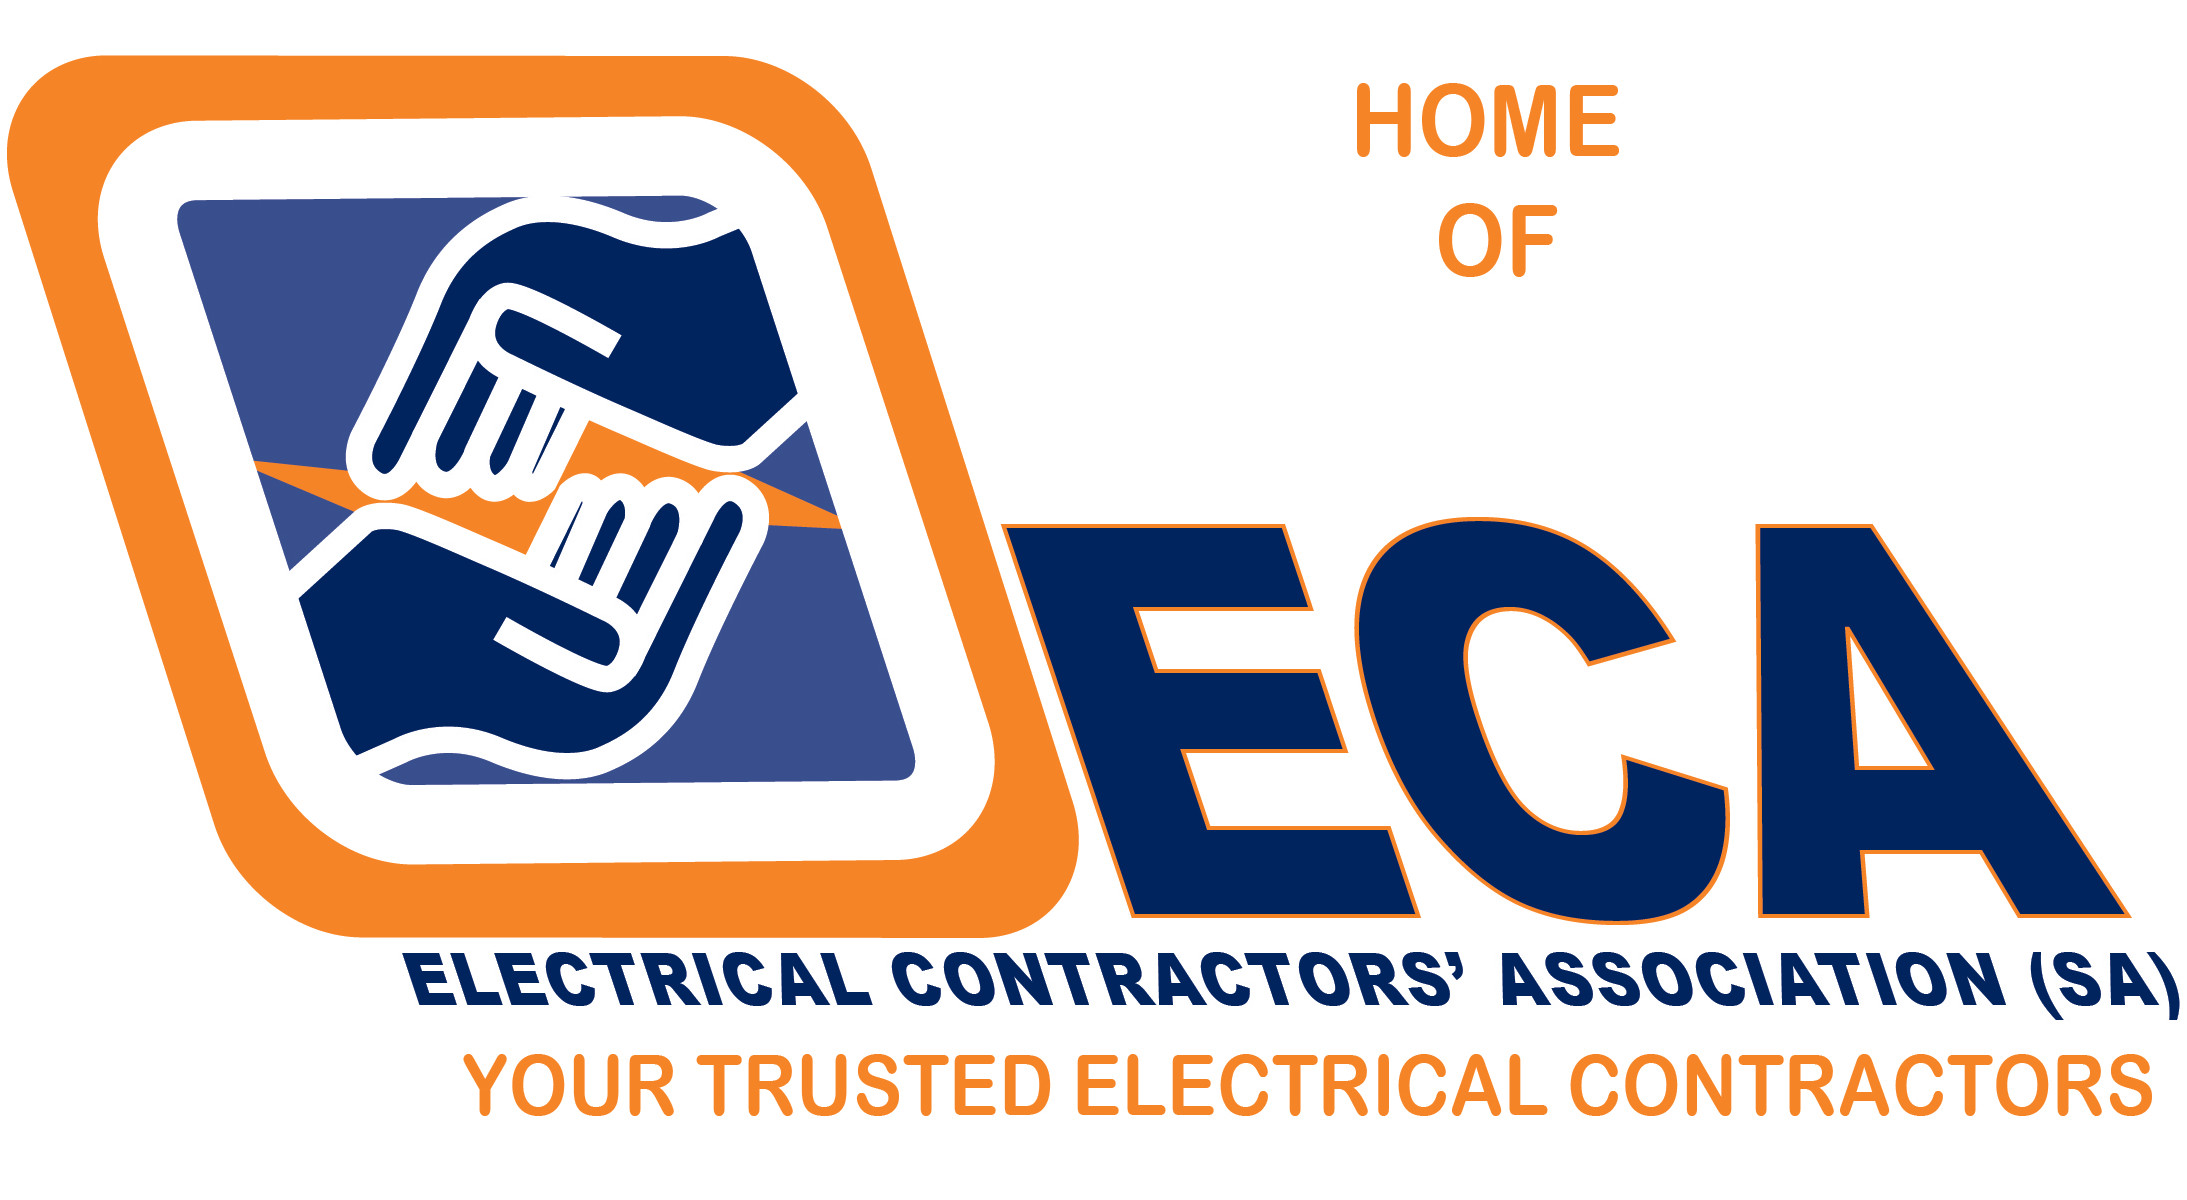 Contact Us - Cato Ridge Electrical